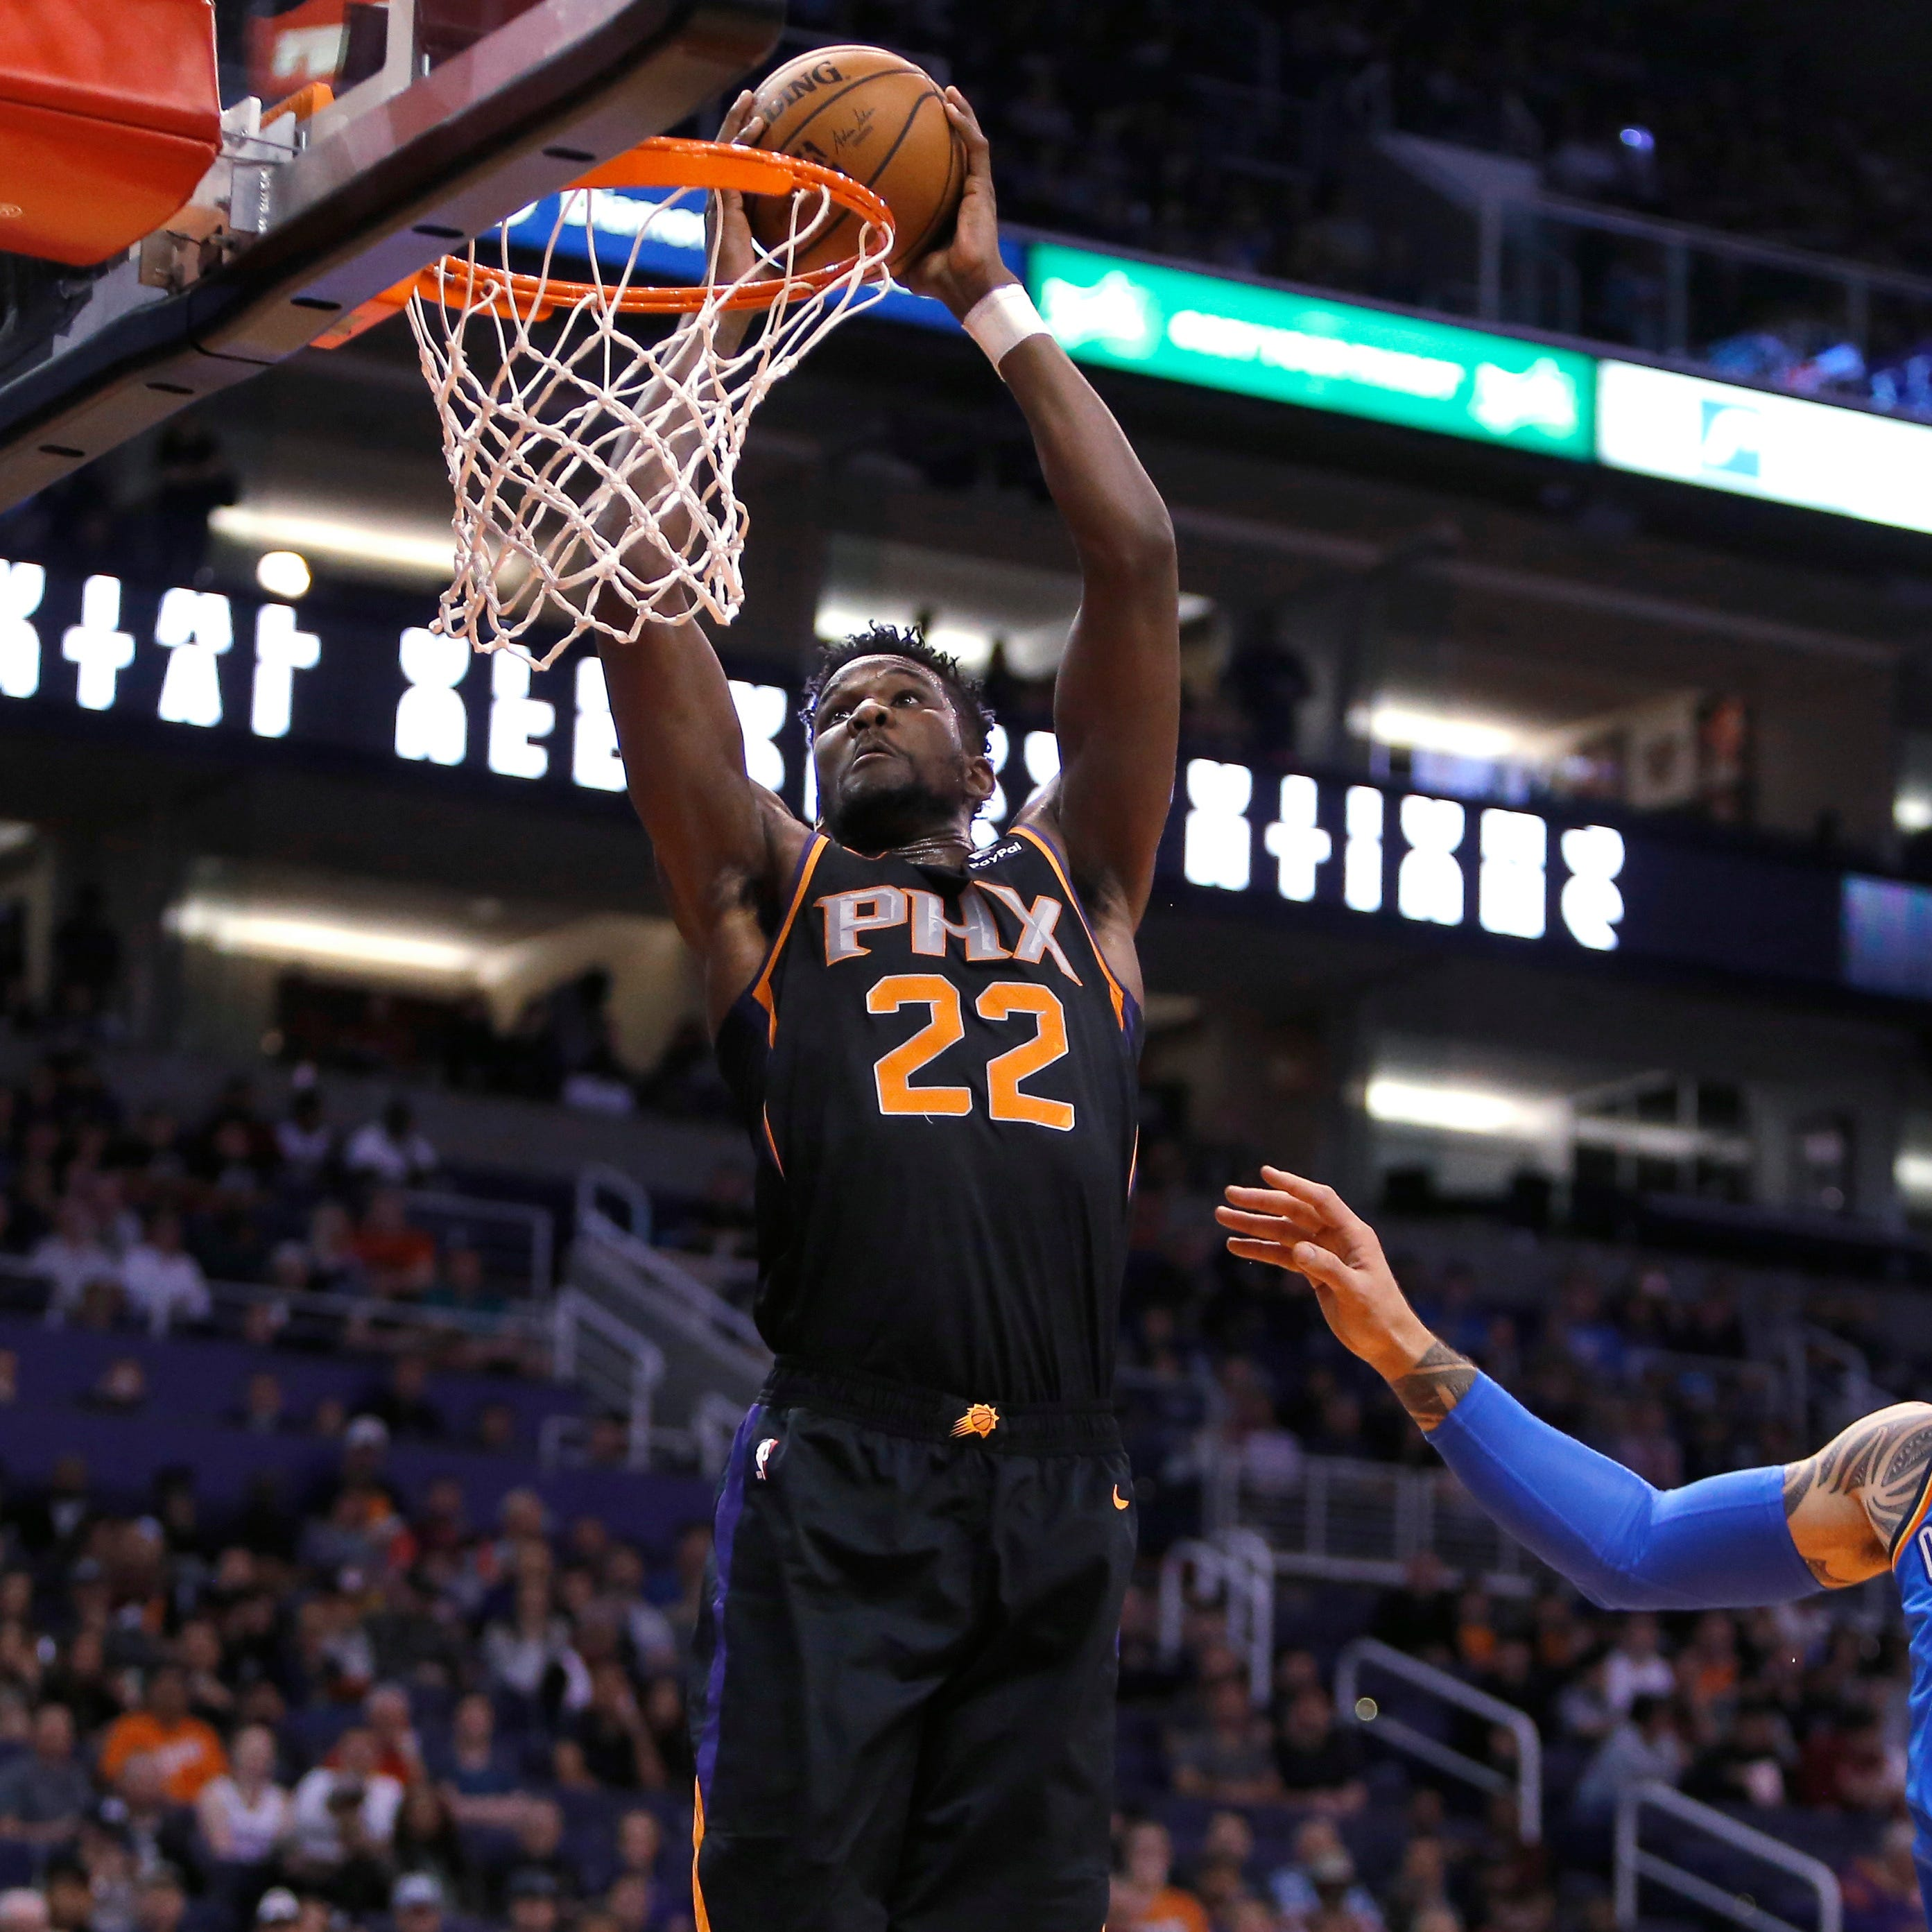 'Another game': Suns rookie Deandre Ayton downplays battle with 76ers center Joel Embiid